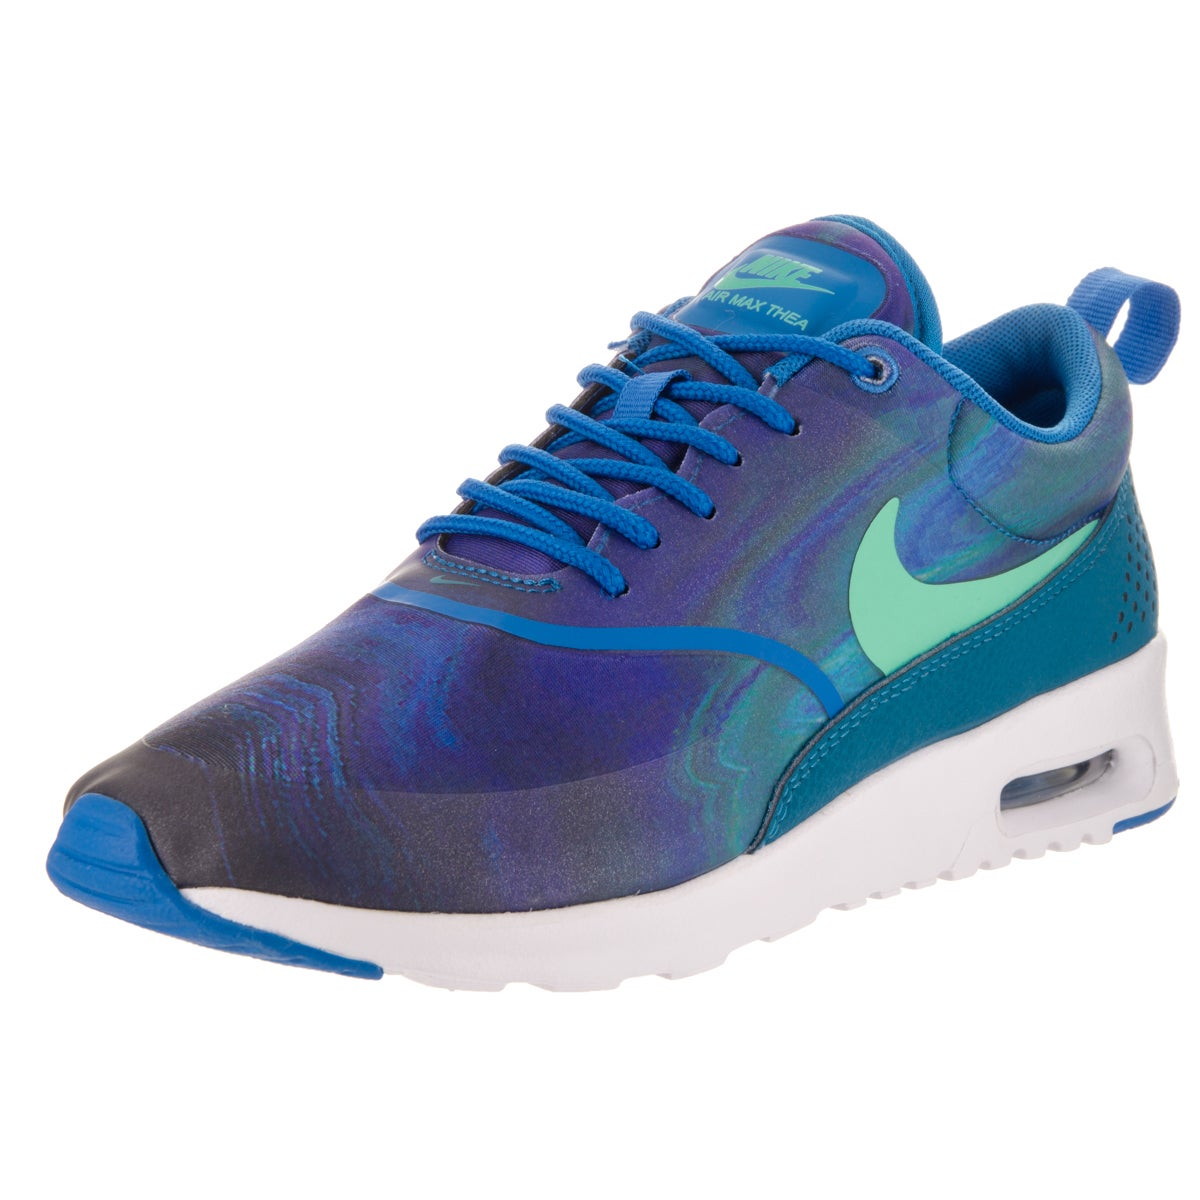 85f7a651ebd7 Shop Nike Women s Air Max Blue Gradient Thea Print Running Shoe ...